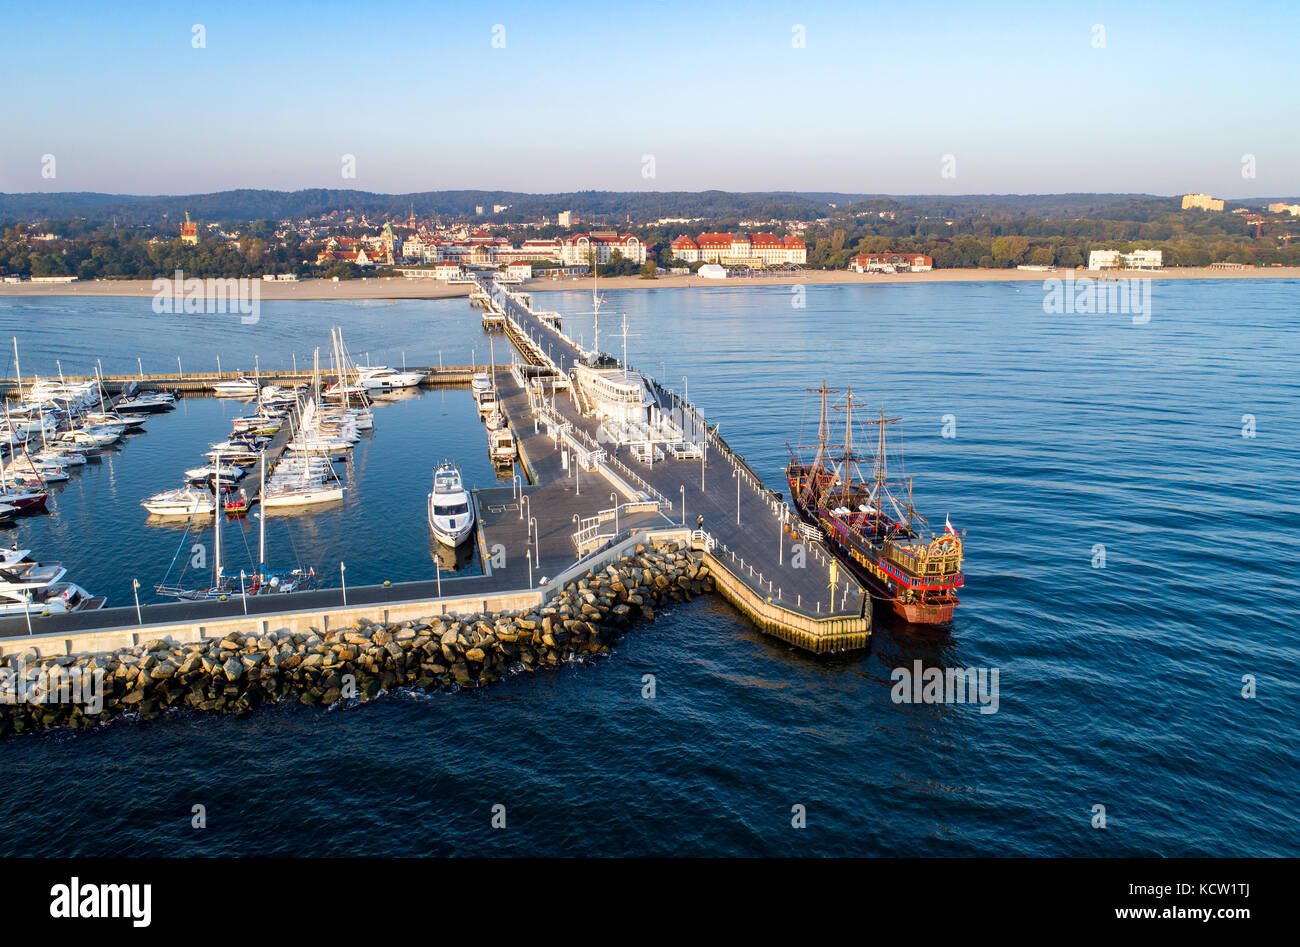 Sopot resort in Poland. Wooden pier (molo) with marina, yachts, pirate tourist ship, beach, vacation infrastructure. - Stock Image